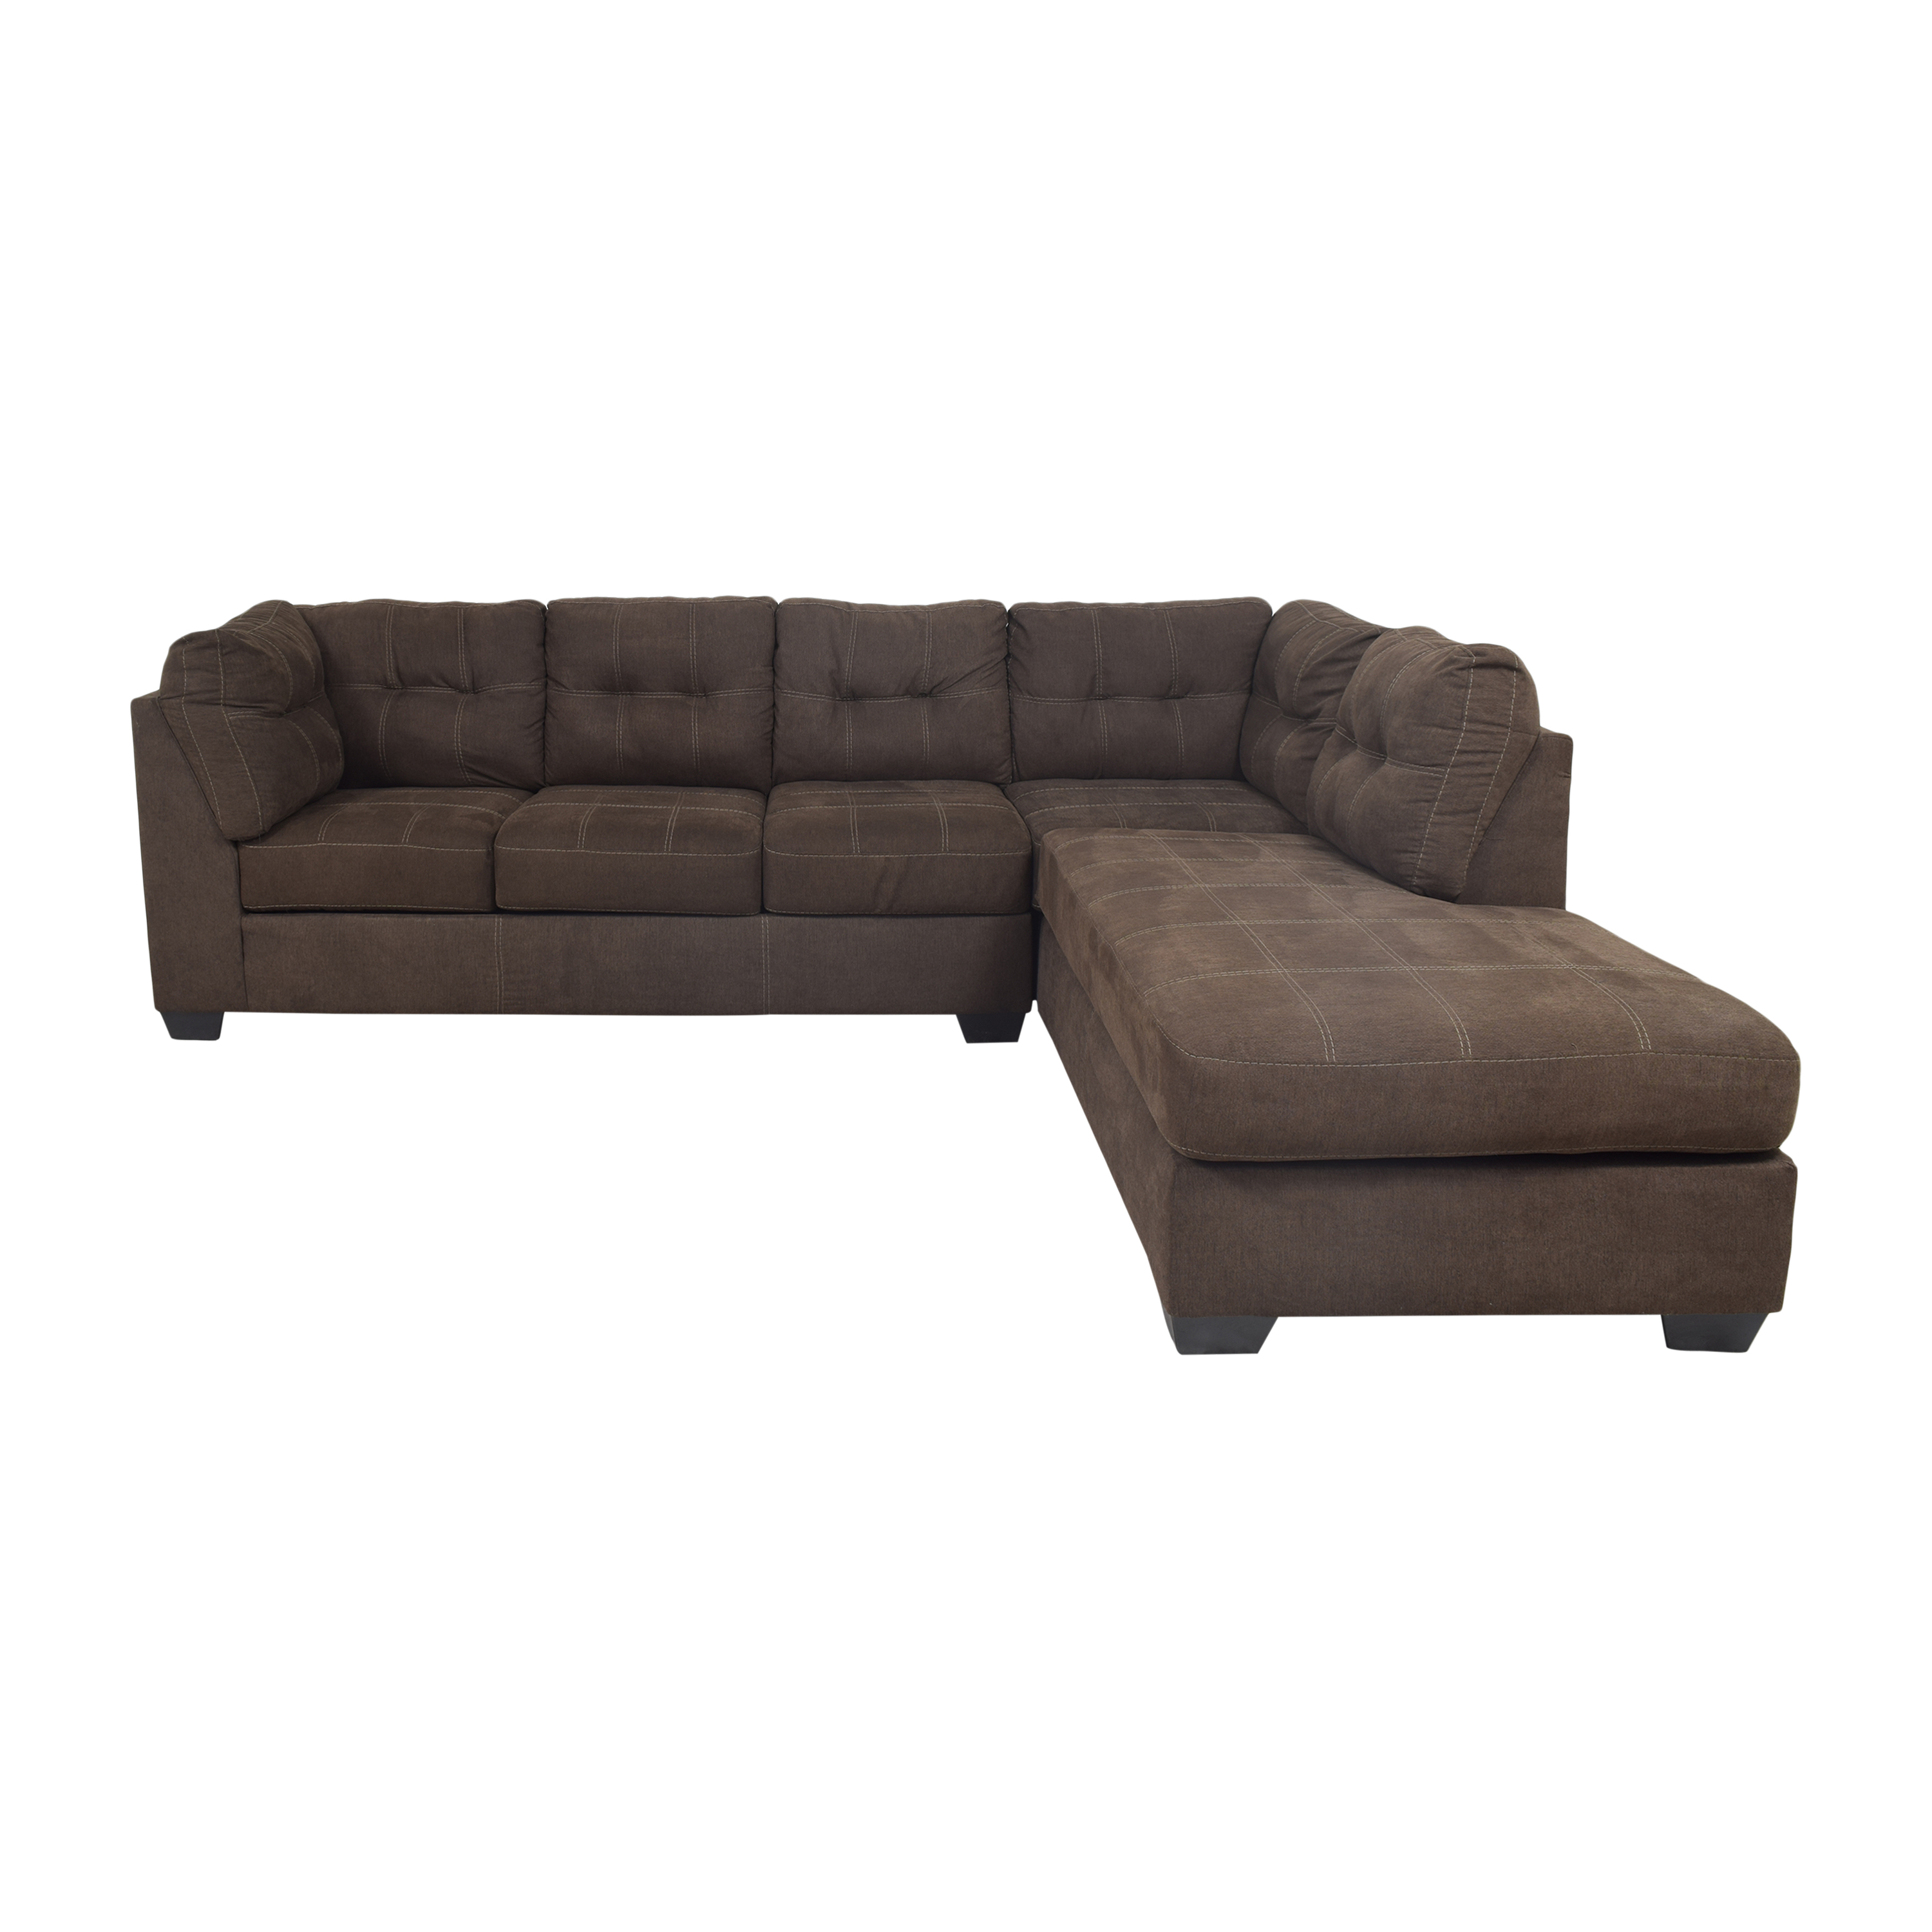 Ashley Furniture Ashley Furniture Pitkin Two-Piece Chaise Sectional with Ottoman nj